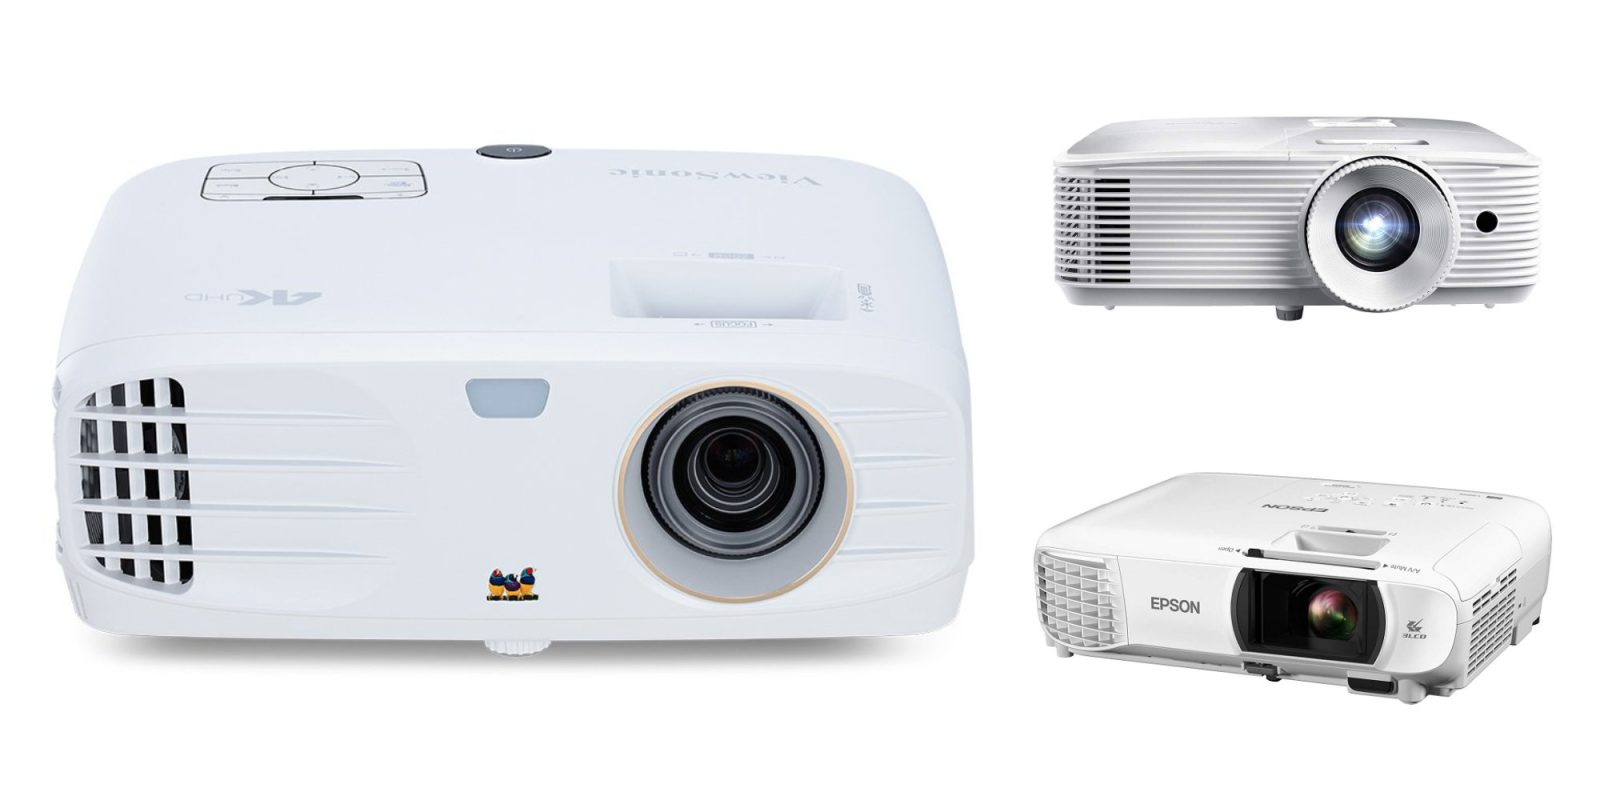 Enjoy 300-inches of 4K w/ ViewSonic's UHD Projector for $824, more from $465